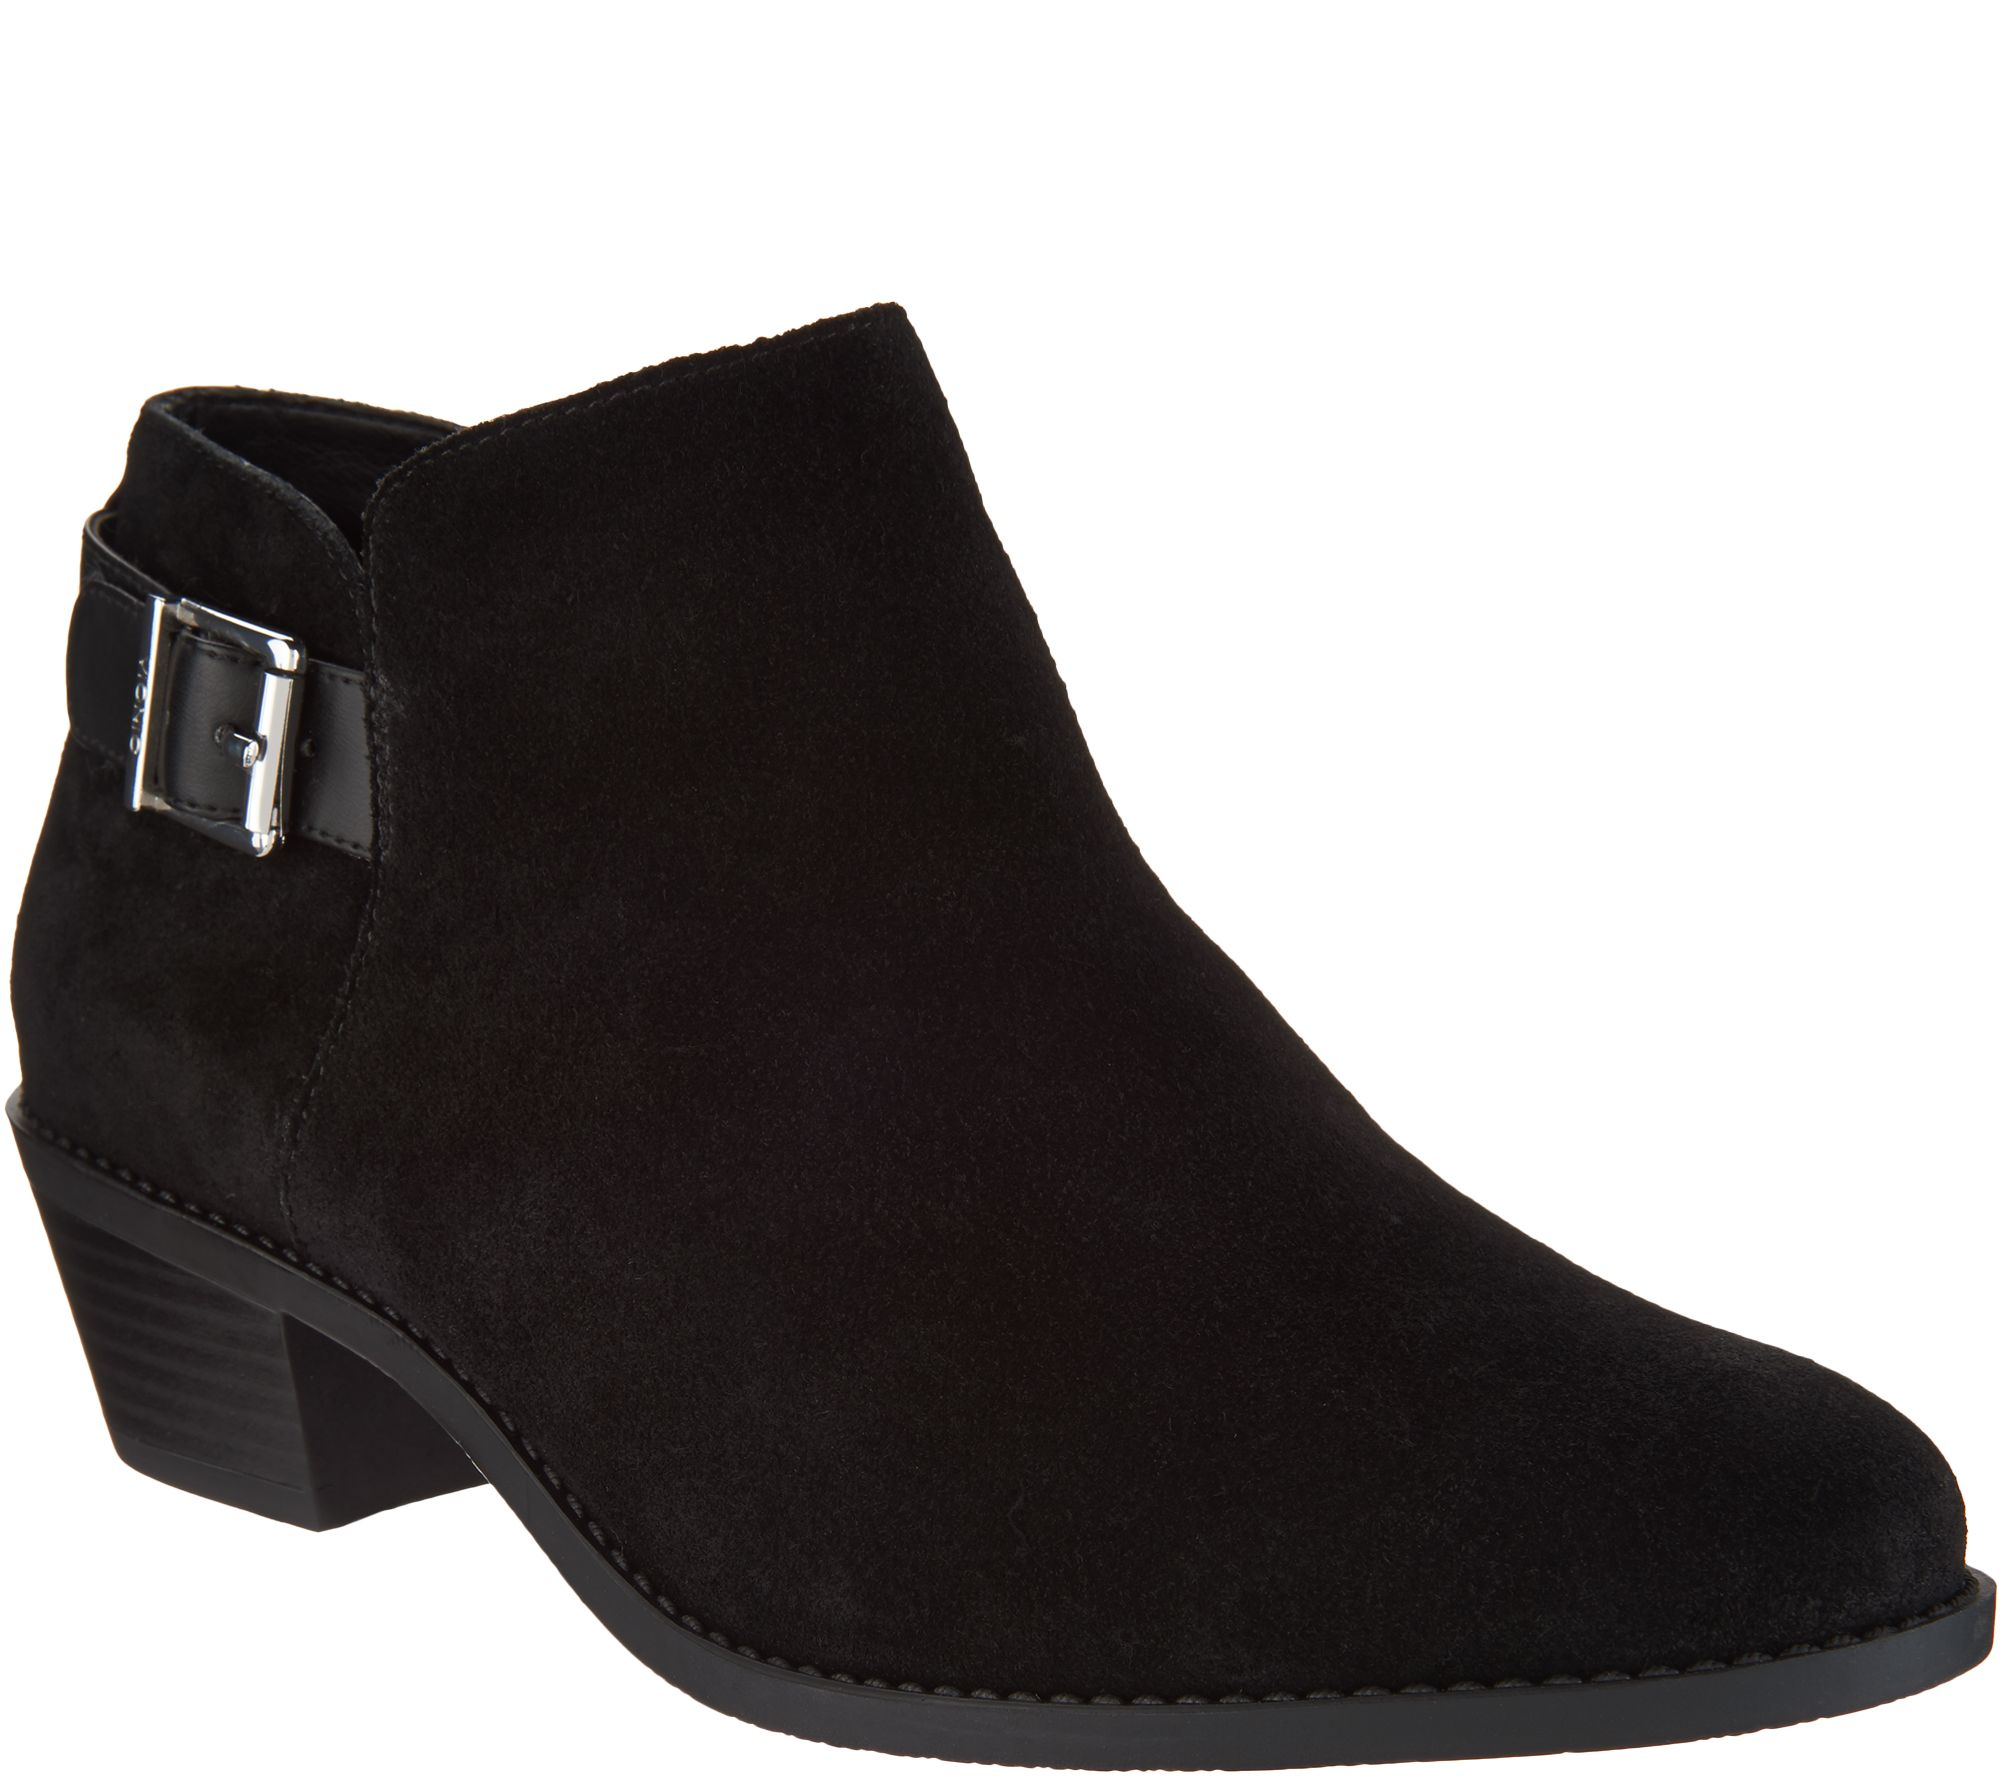 2cee025aeb1 Vionic Ankle Boots with Buckle - Millie — QVC.com